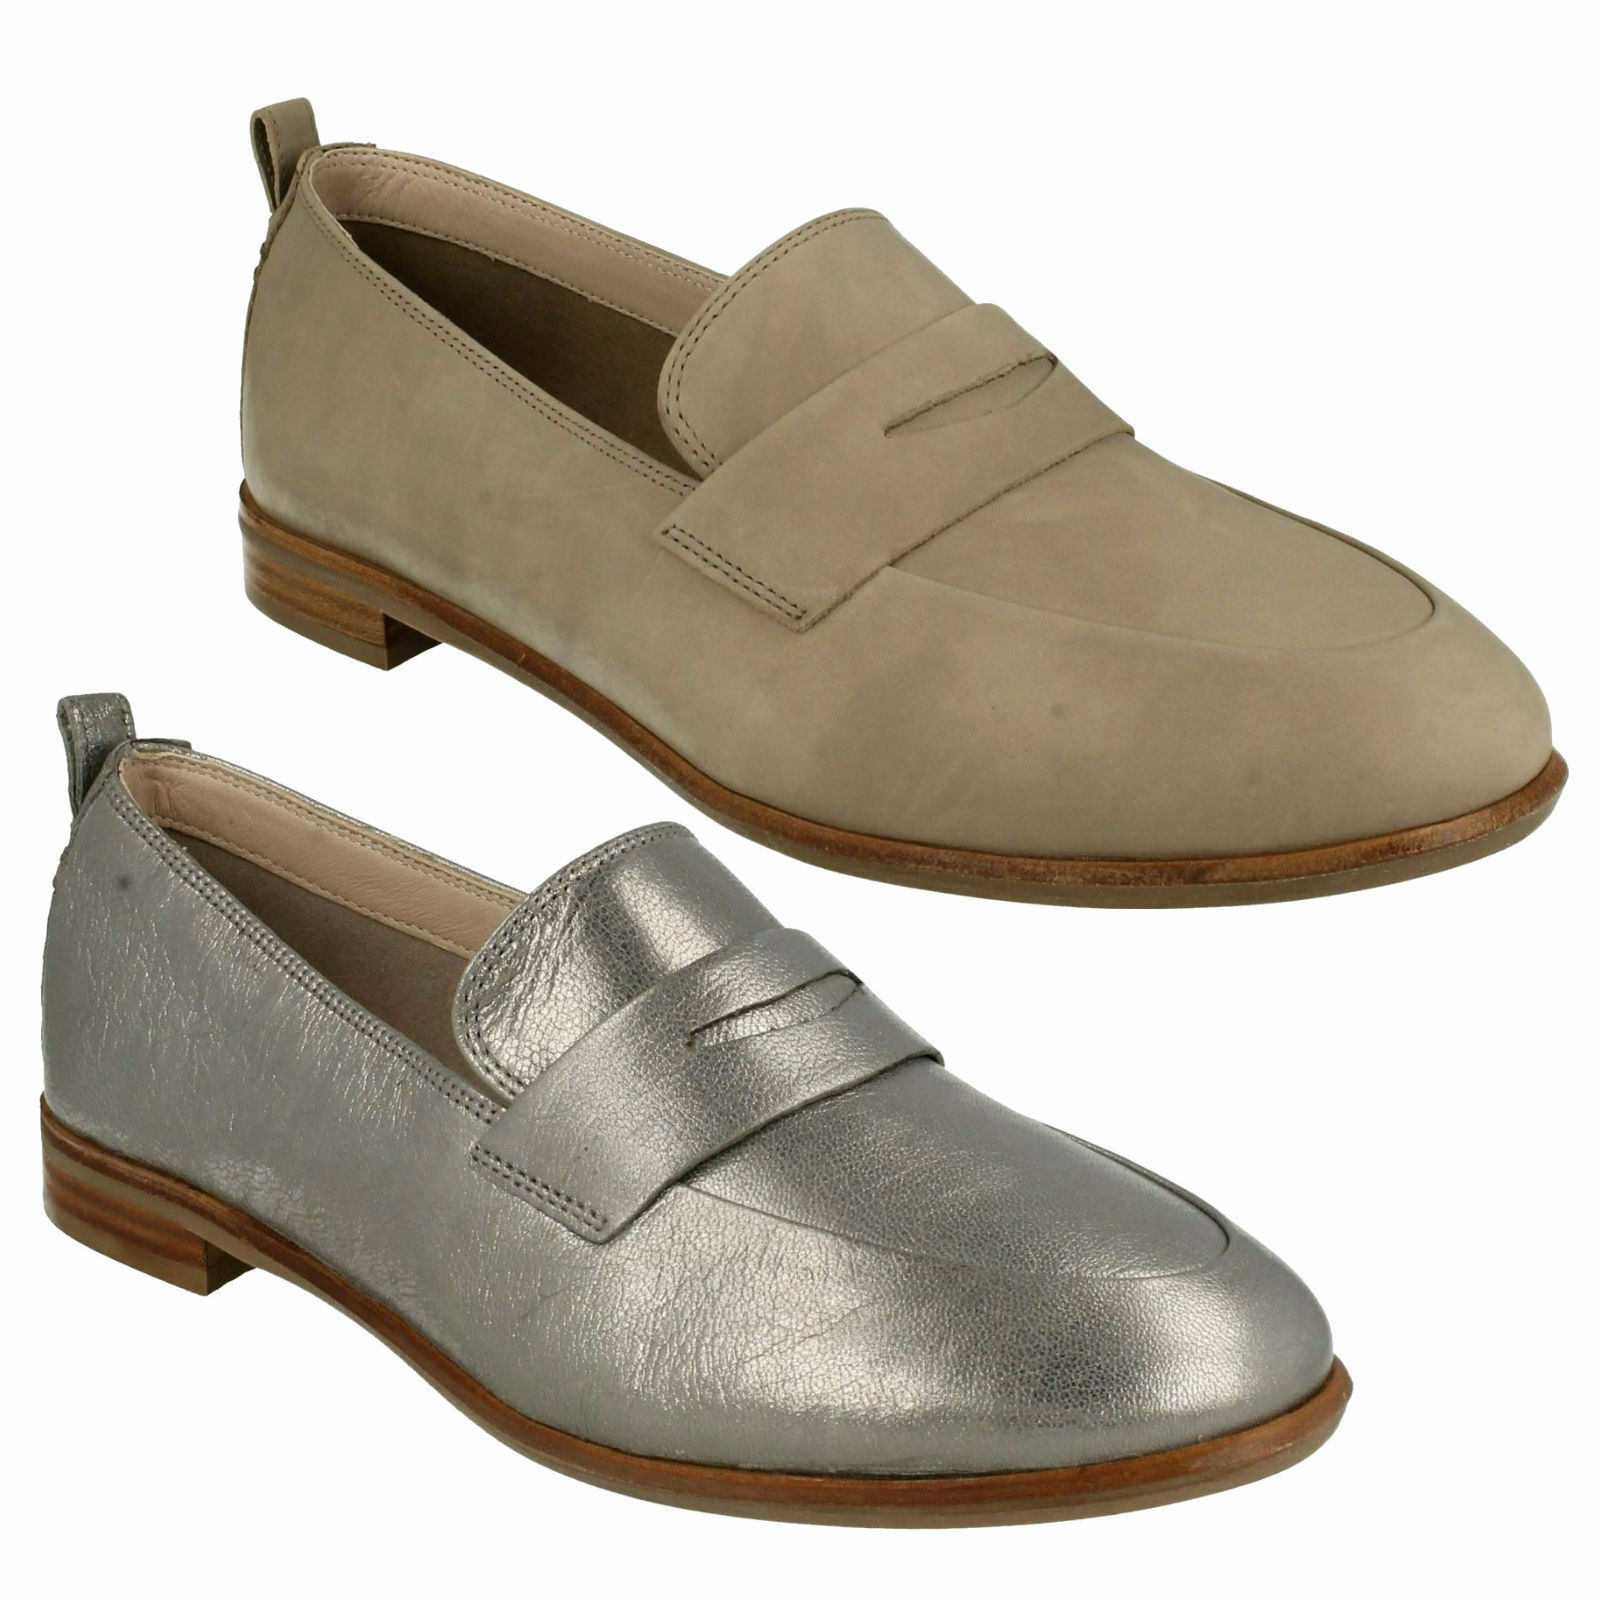 ALANIA BELLE LADIES CLARKS SLIP ON LEATHER  FLAT MOCCASIN LOAFERS CASUAL chaussures